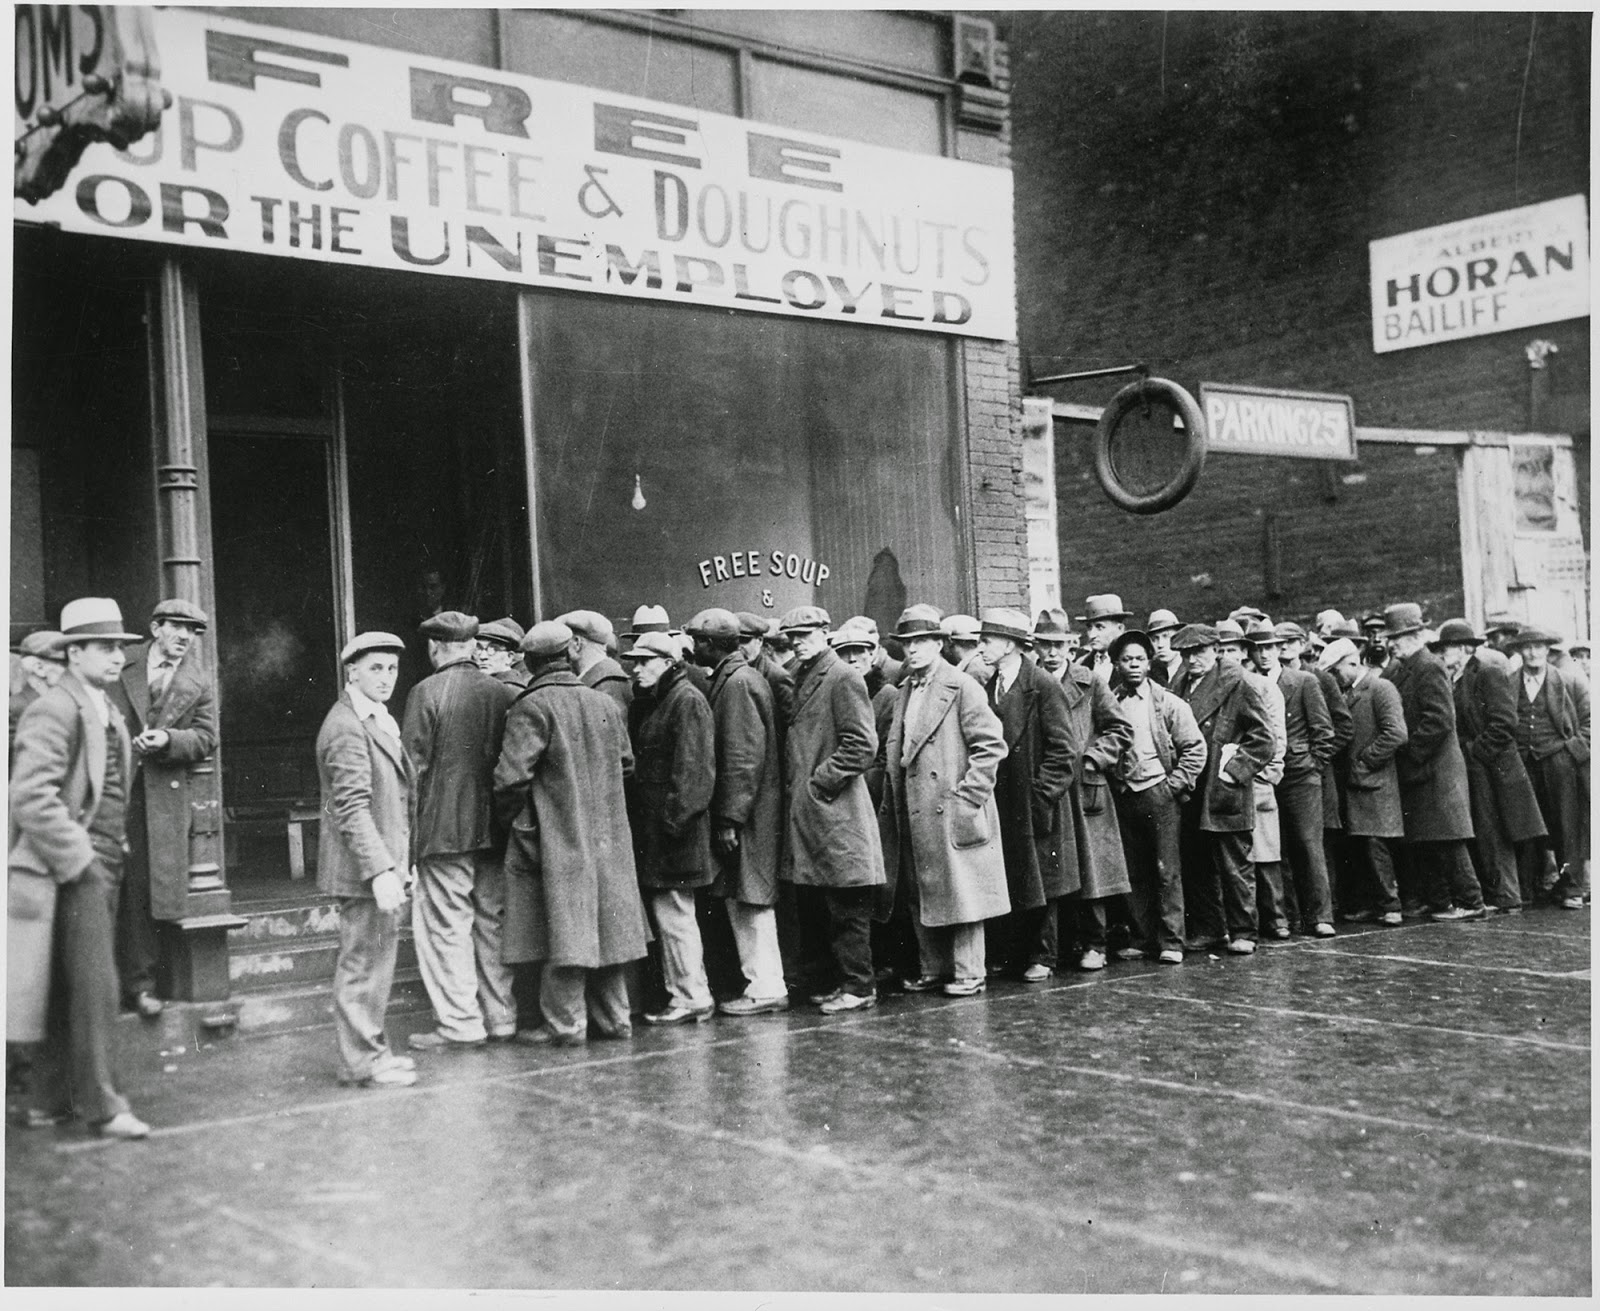 Al Capones soup kitchen during the Great Depression 1931